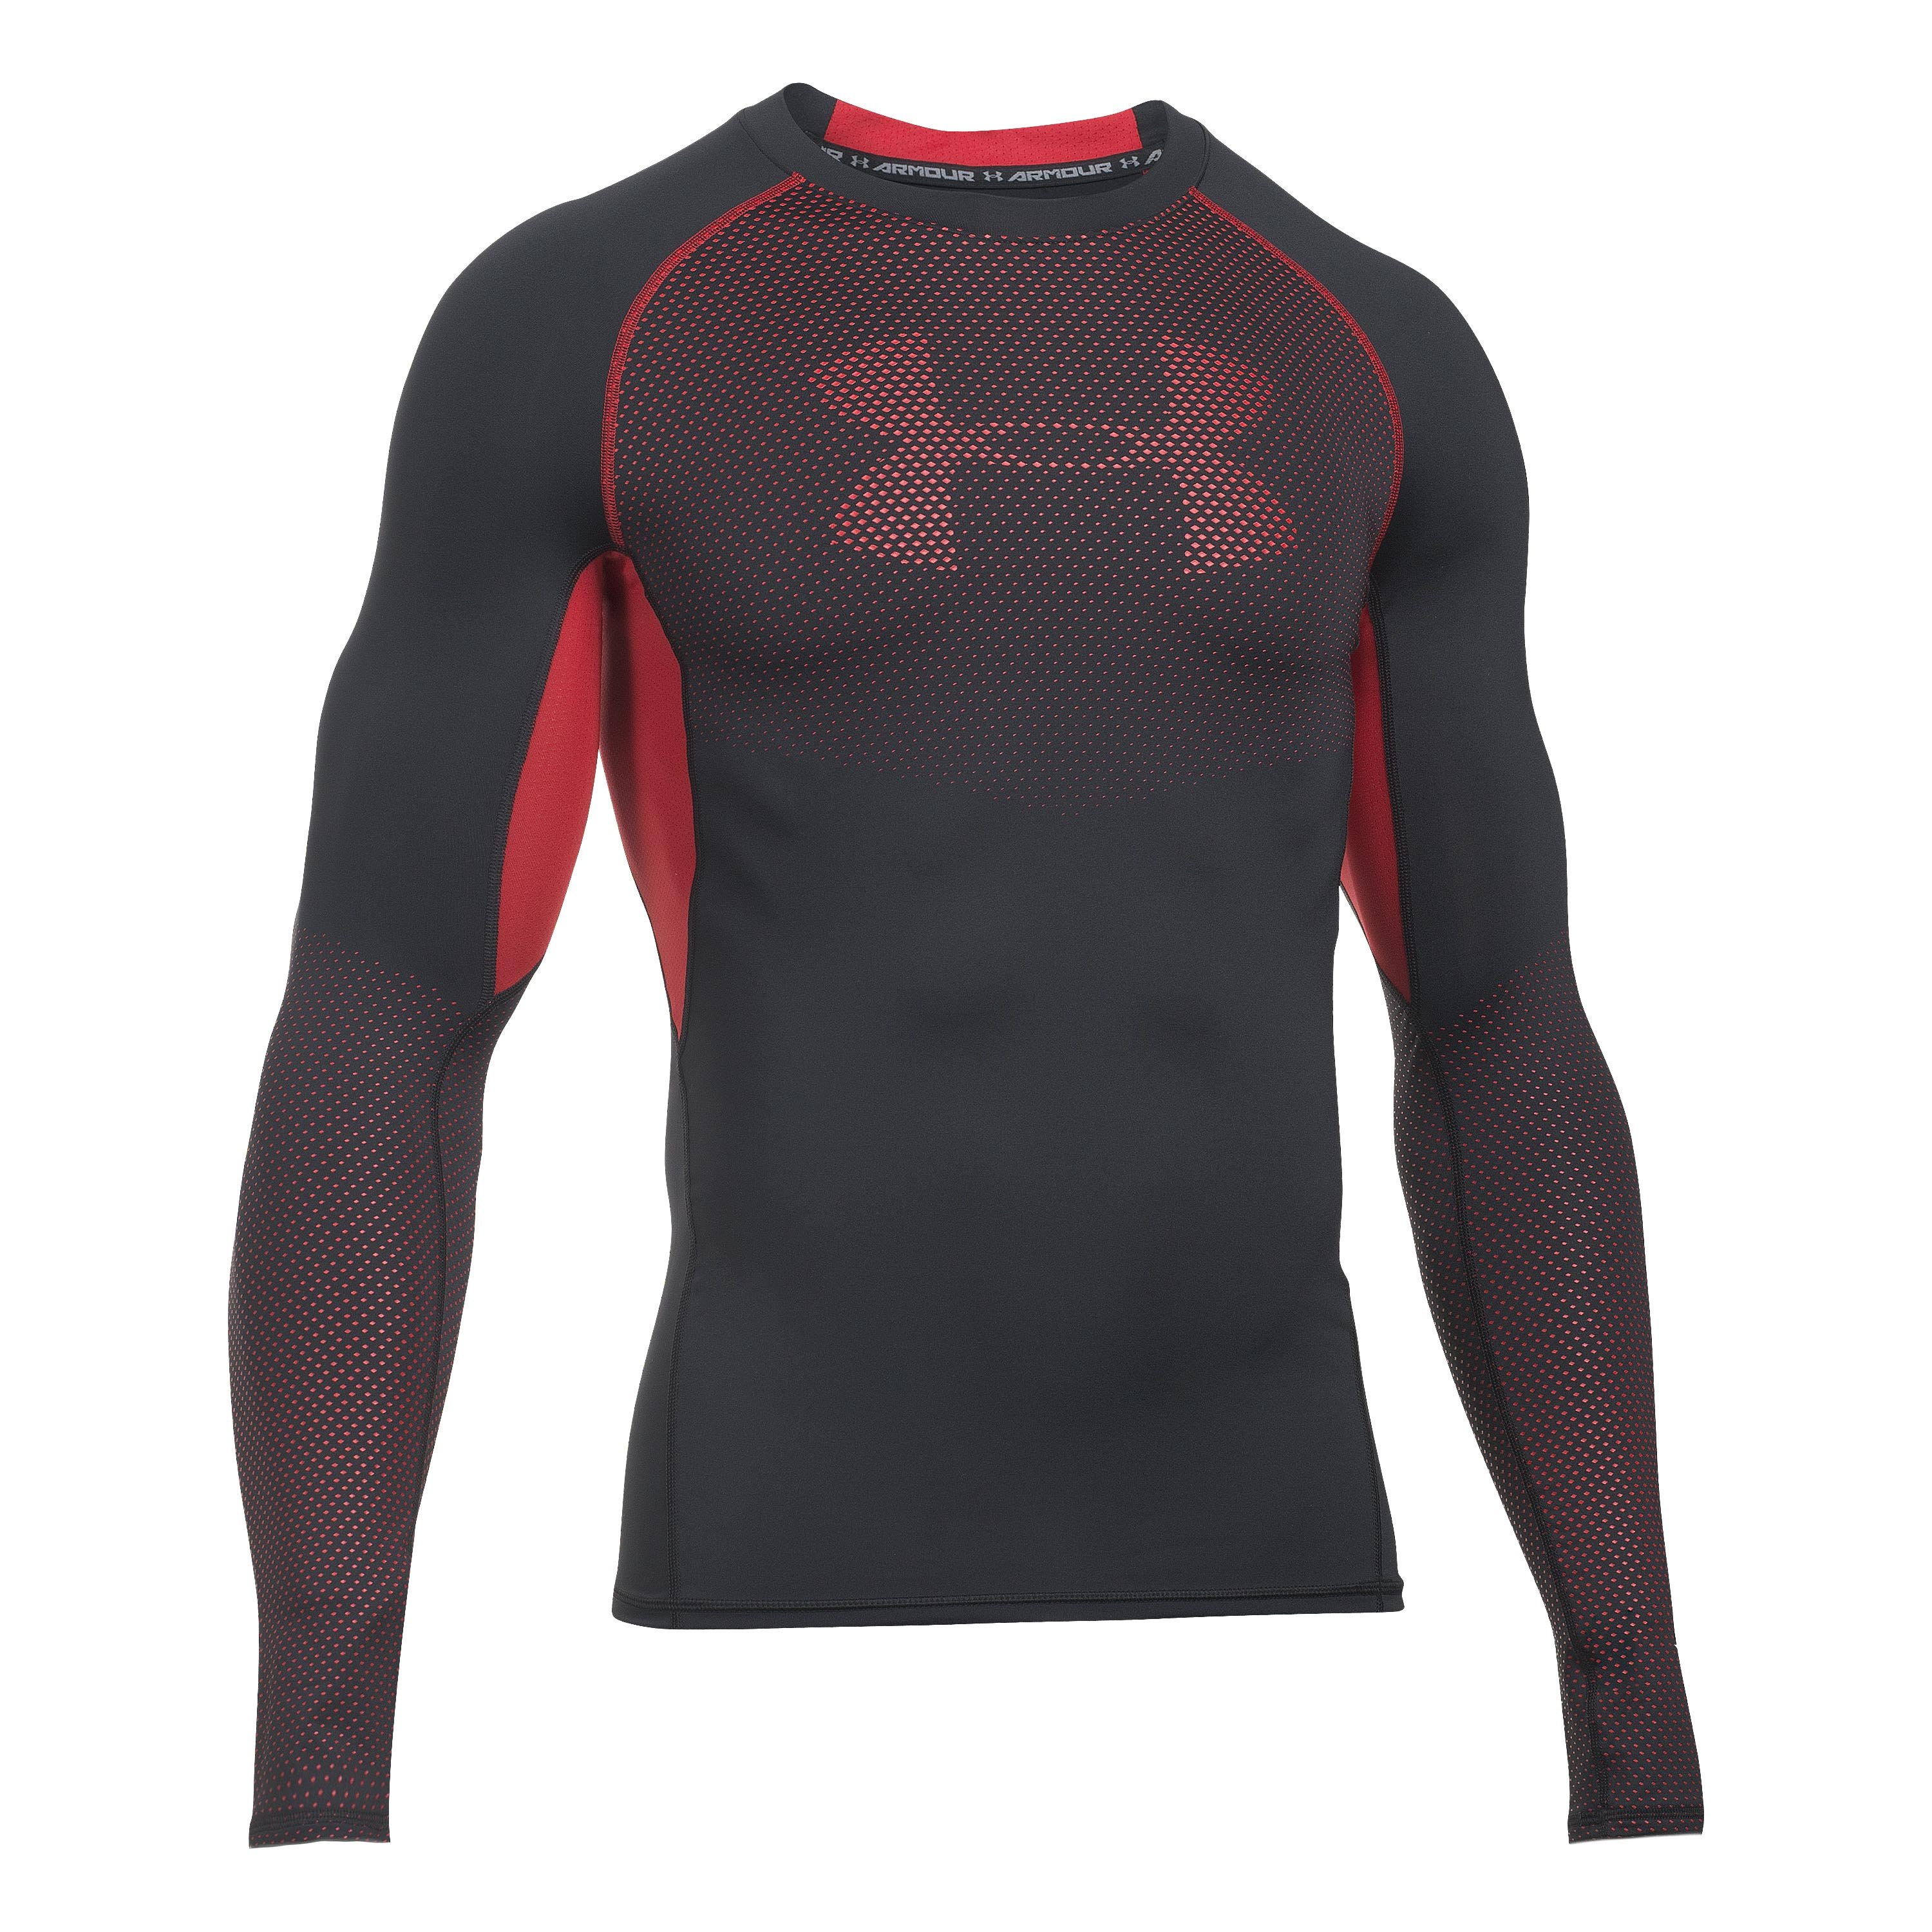 Under Armour Langarmshirt HeatGear Armour Graphic schwarz-rot